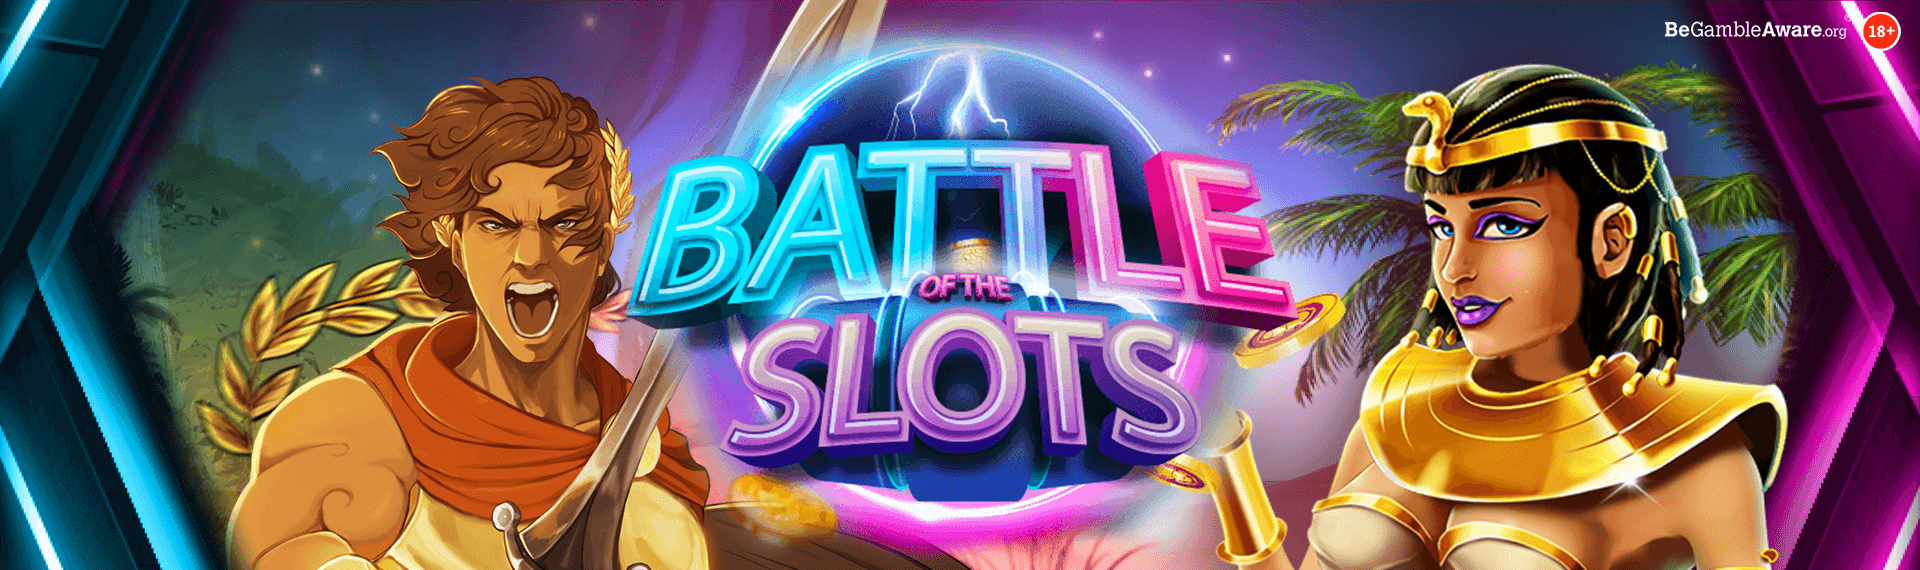 battle of the slots banner